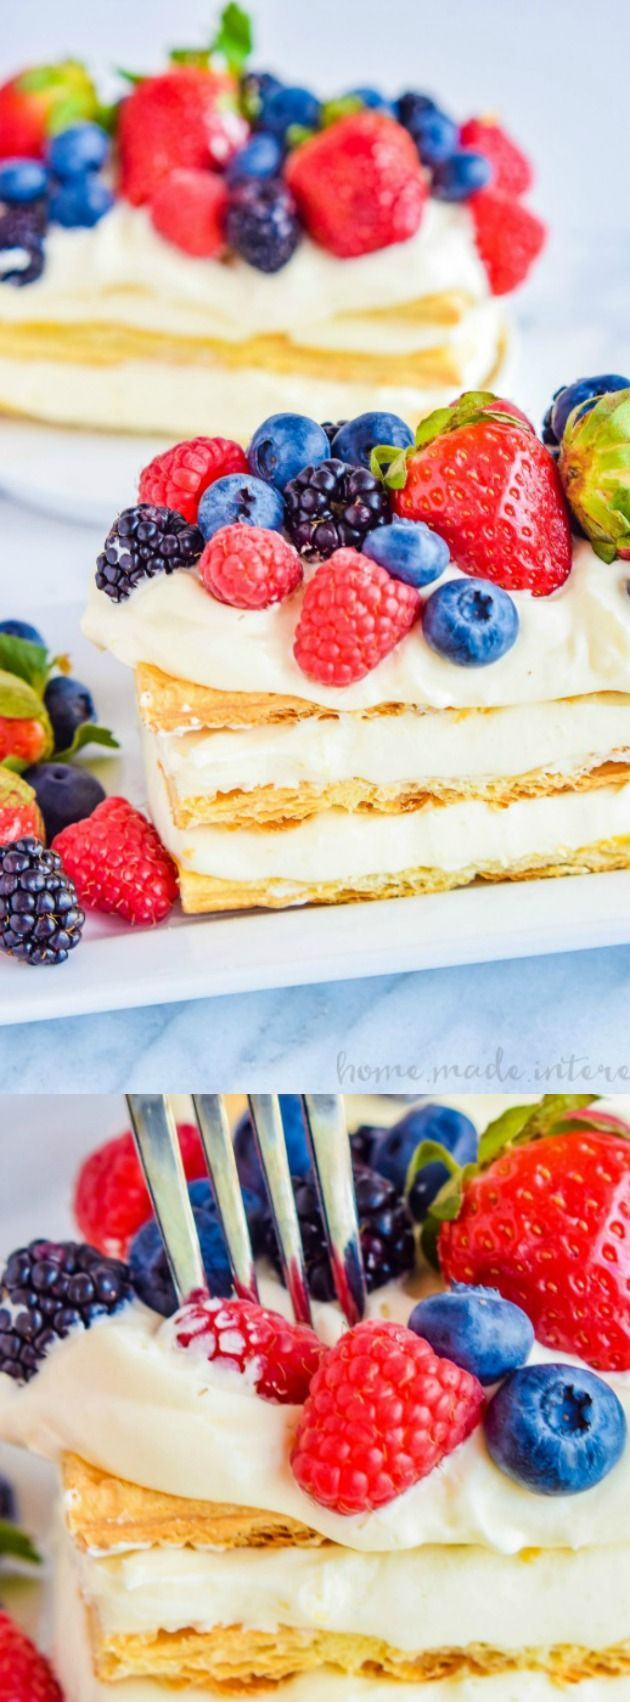 This Lemon Berry Napoleon from Home Made Interest is the ultimate lemon dessert. Piles of creamy lemon mousse are sandwiched between light and flaky puff pastry and topped with fresh berries!